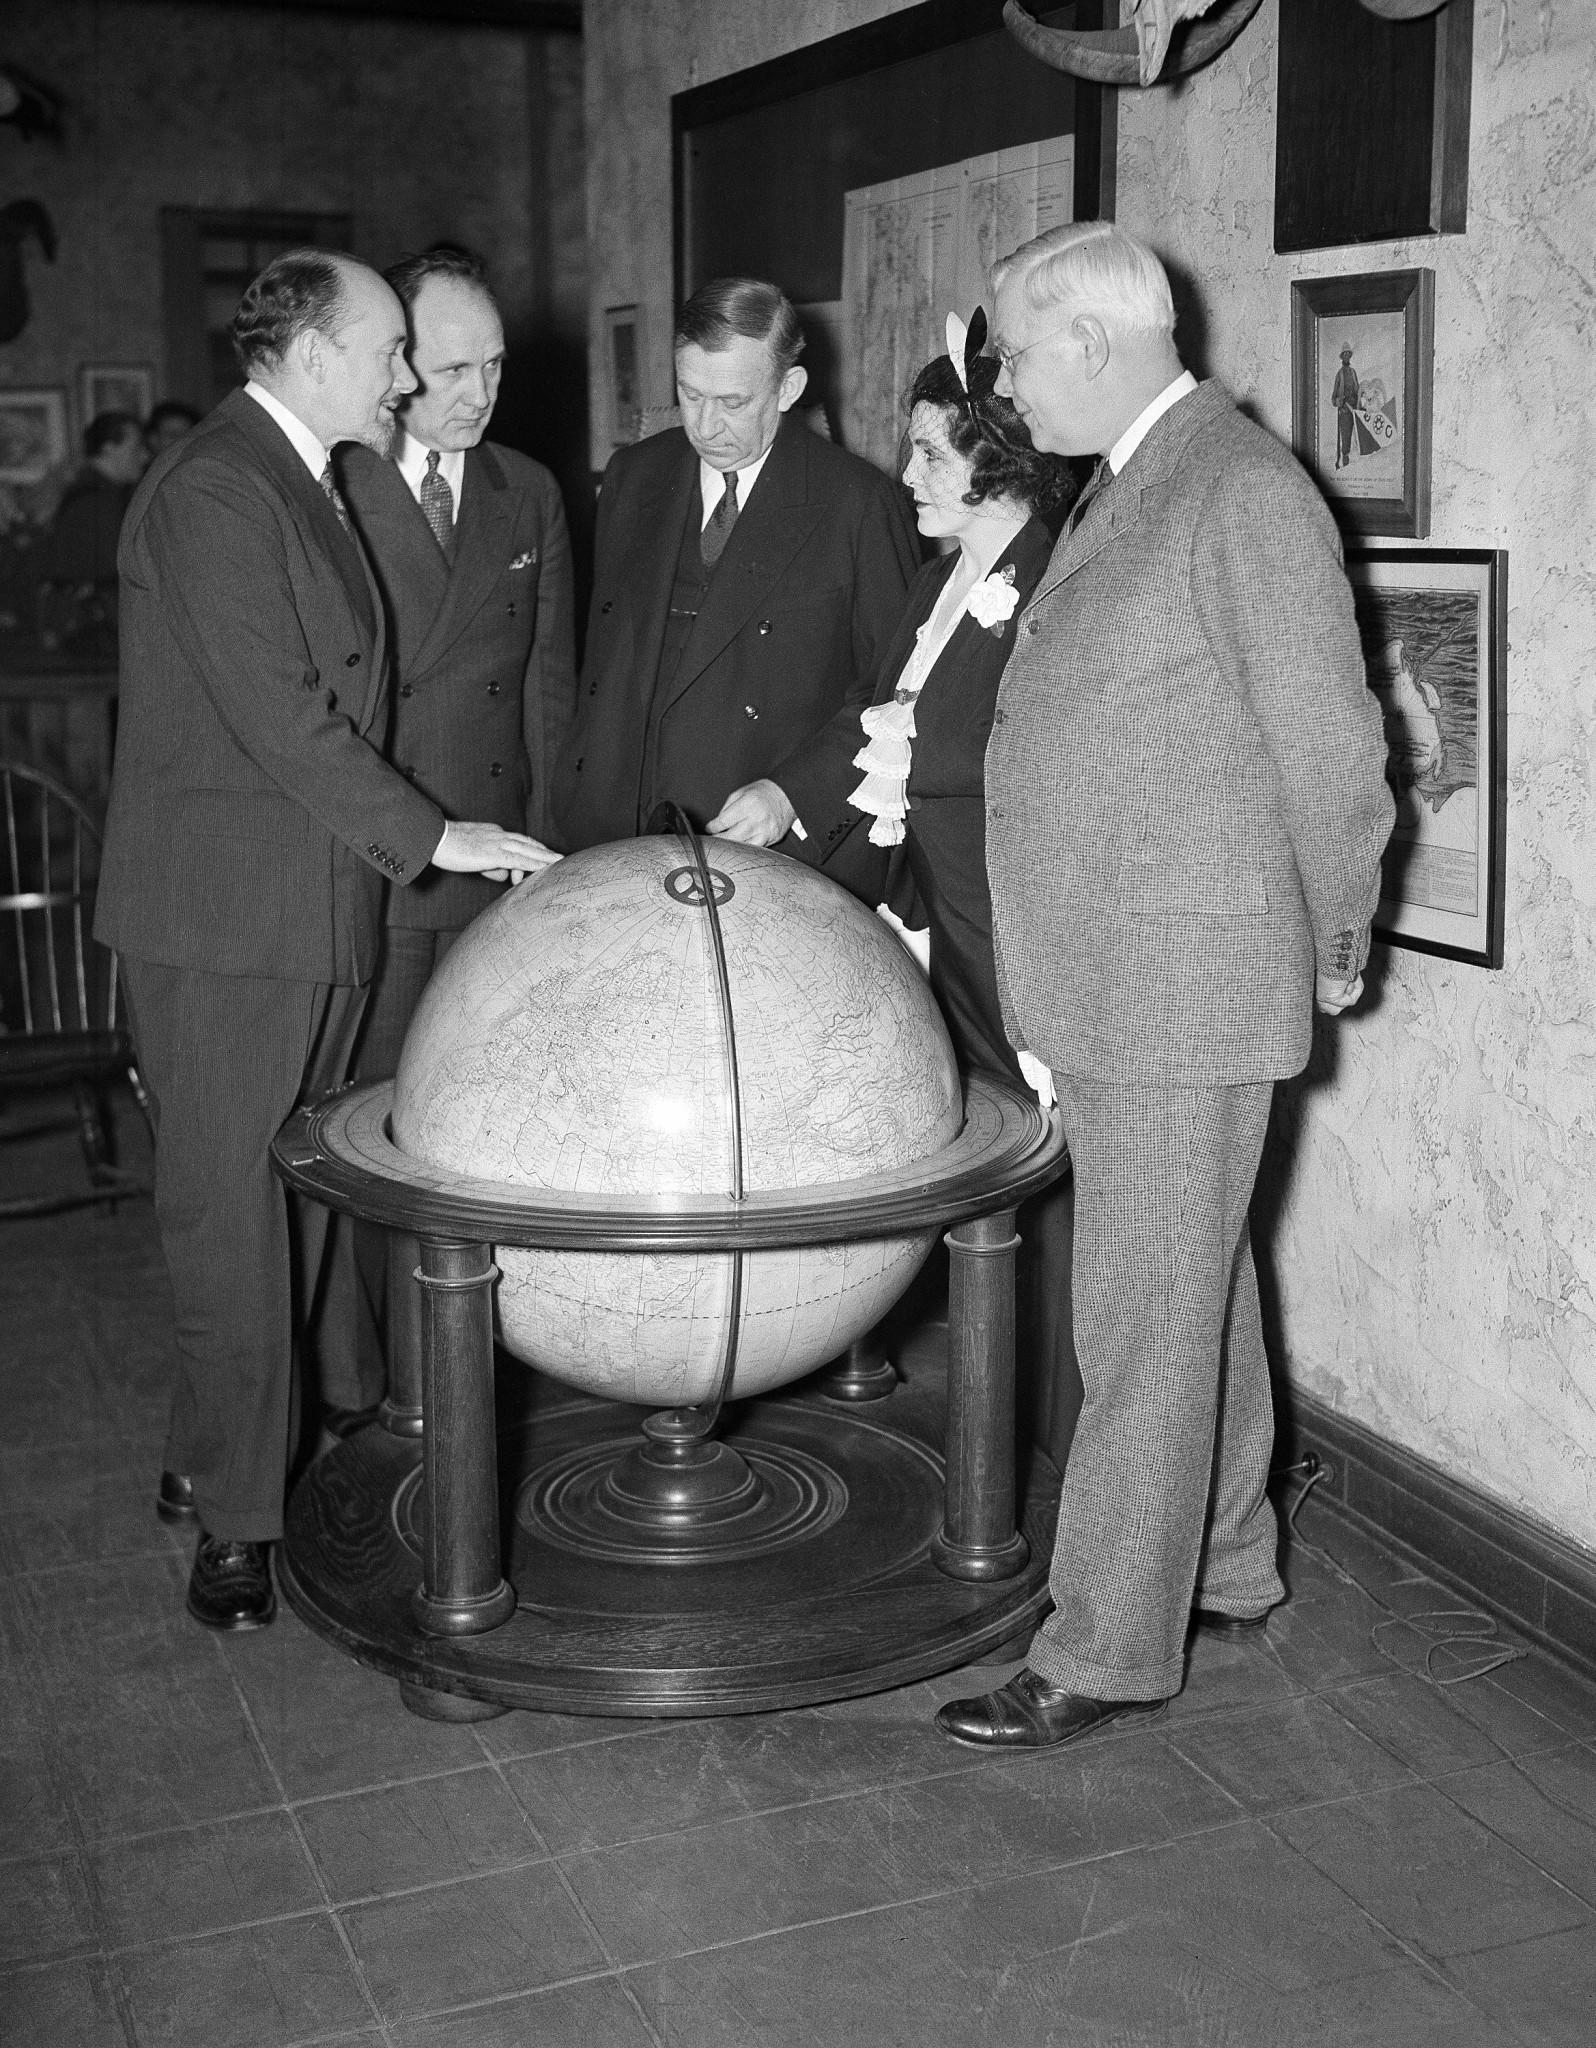 <p>Left to right: Sir George Hubert Wilkins, explorer and writer; Joseph Robinson, secretary of the Explorers' Club; Walter Granger, president of club; Lady Grace Drummond Hay, writer; and Dr. H. J. Spinden, director of the Brooklyn Museum, study the route of the Zeppelin Hindenburg's flight to America on a globe at the Explorers' Club in New York on May 10, 1936. (AP Photo/John Lindsay) </p>